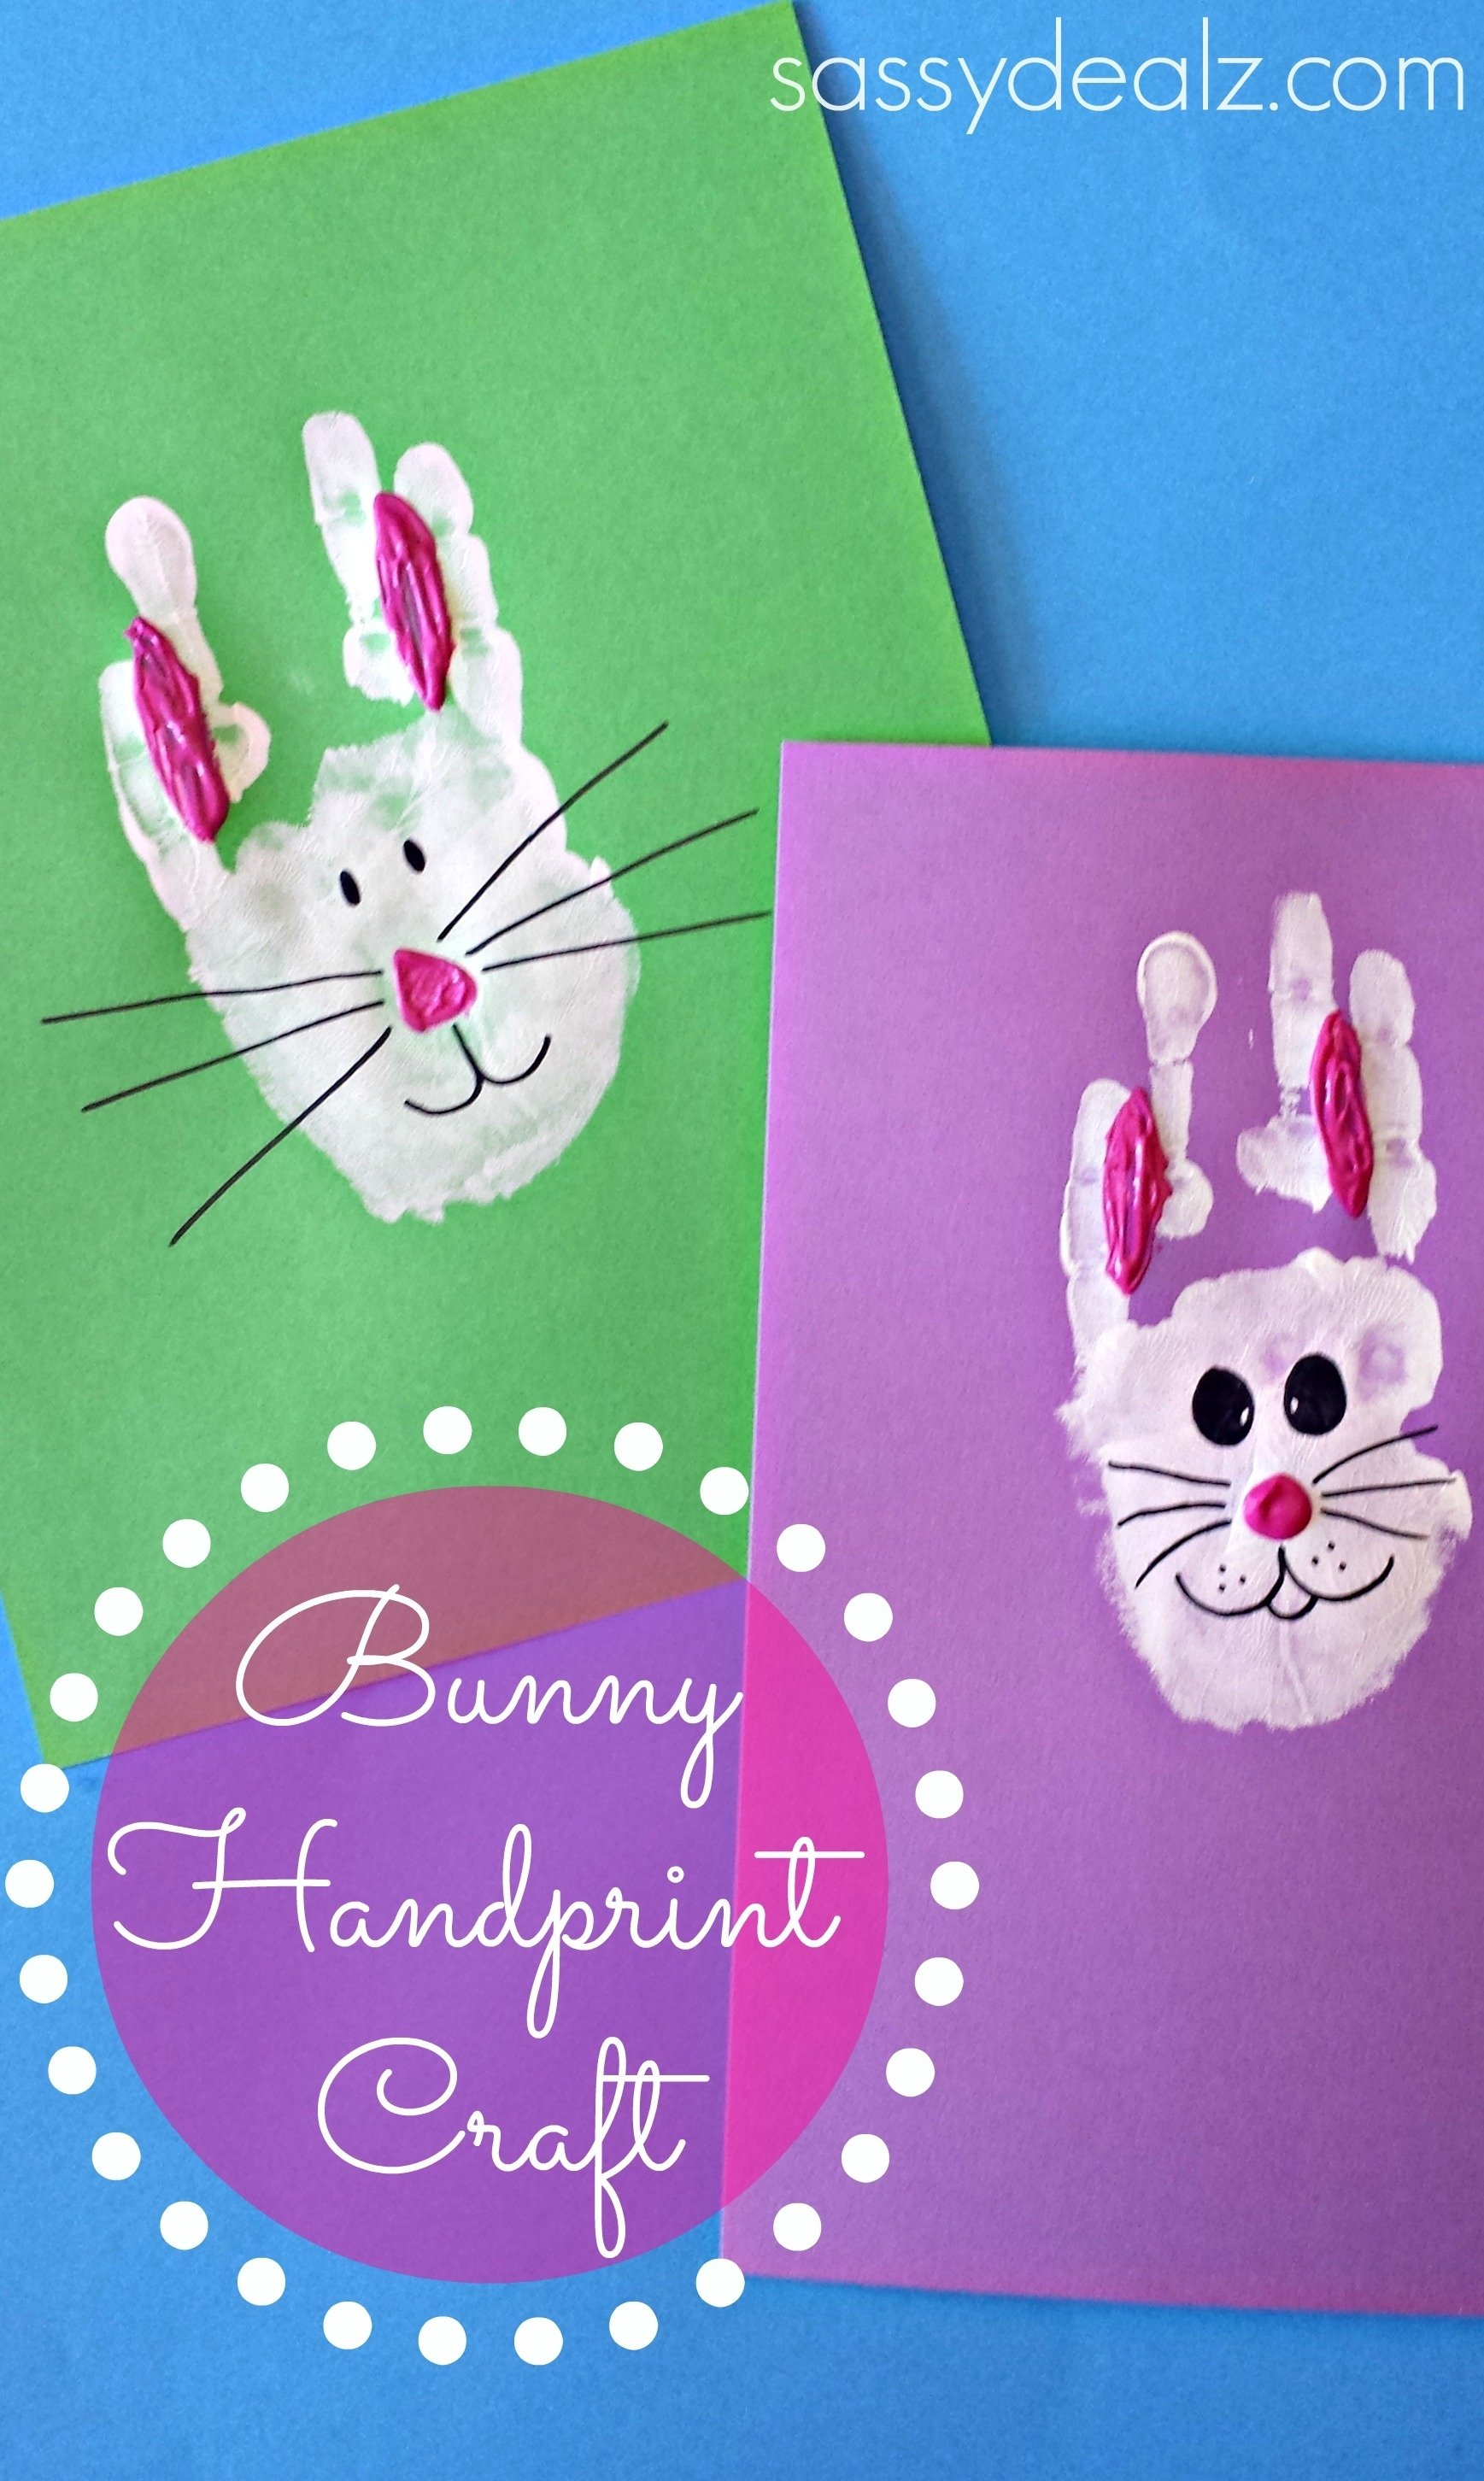 10 Stylish Easter Craft Ideas For Toddlers bunny rabbit handprint craft for kids easter idea crafty morning 1 2020